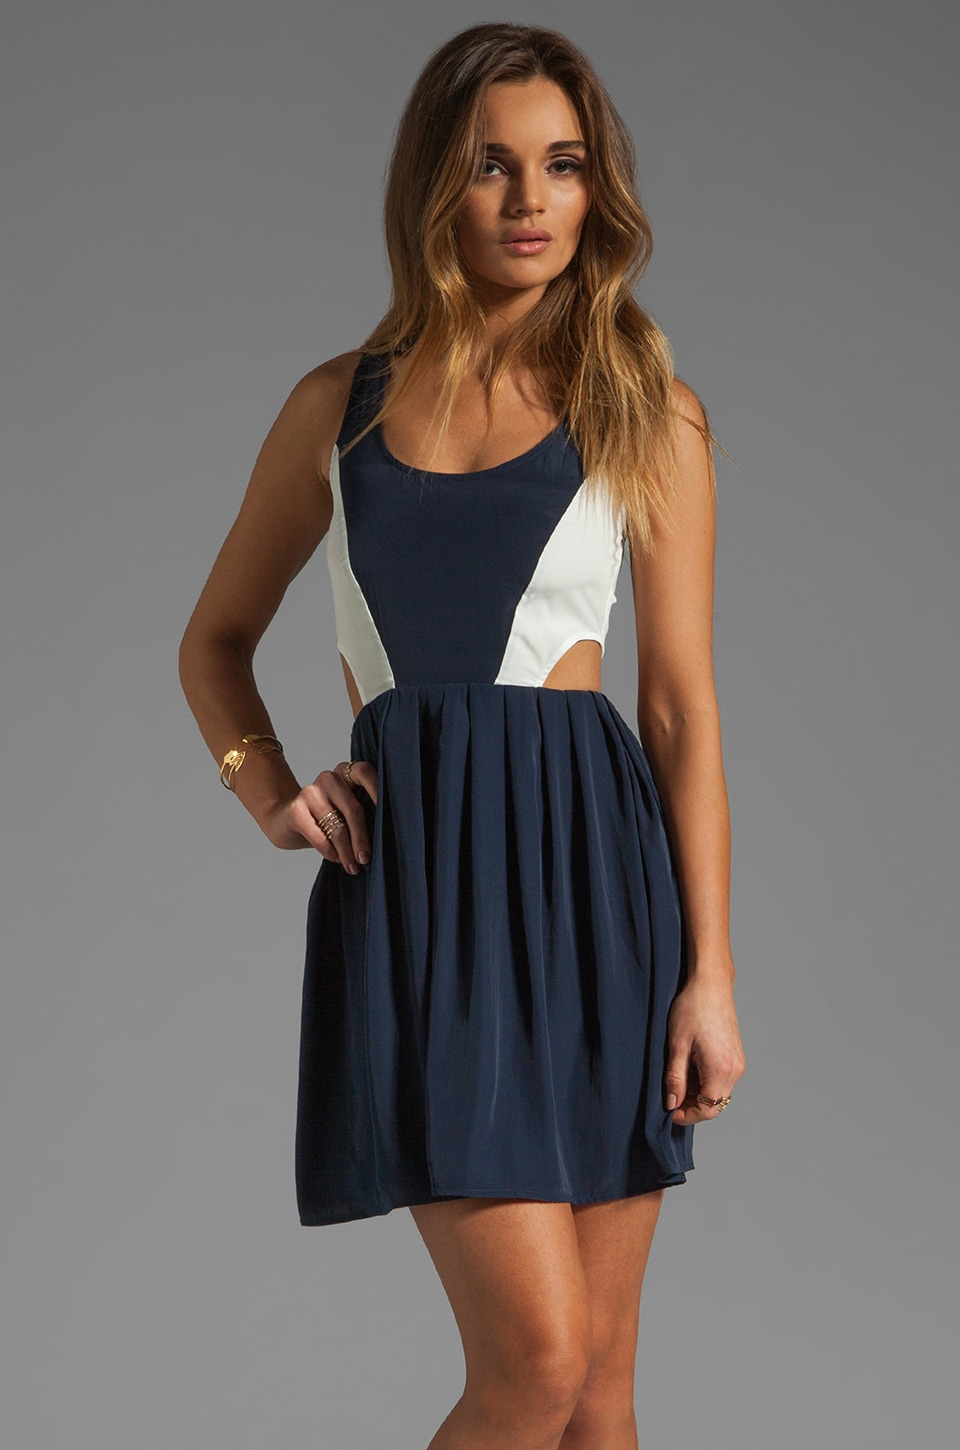 BB Dakota Ripley Colorblock Cupra Touch Dress in Navy/White